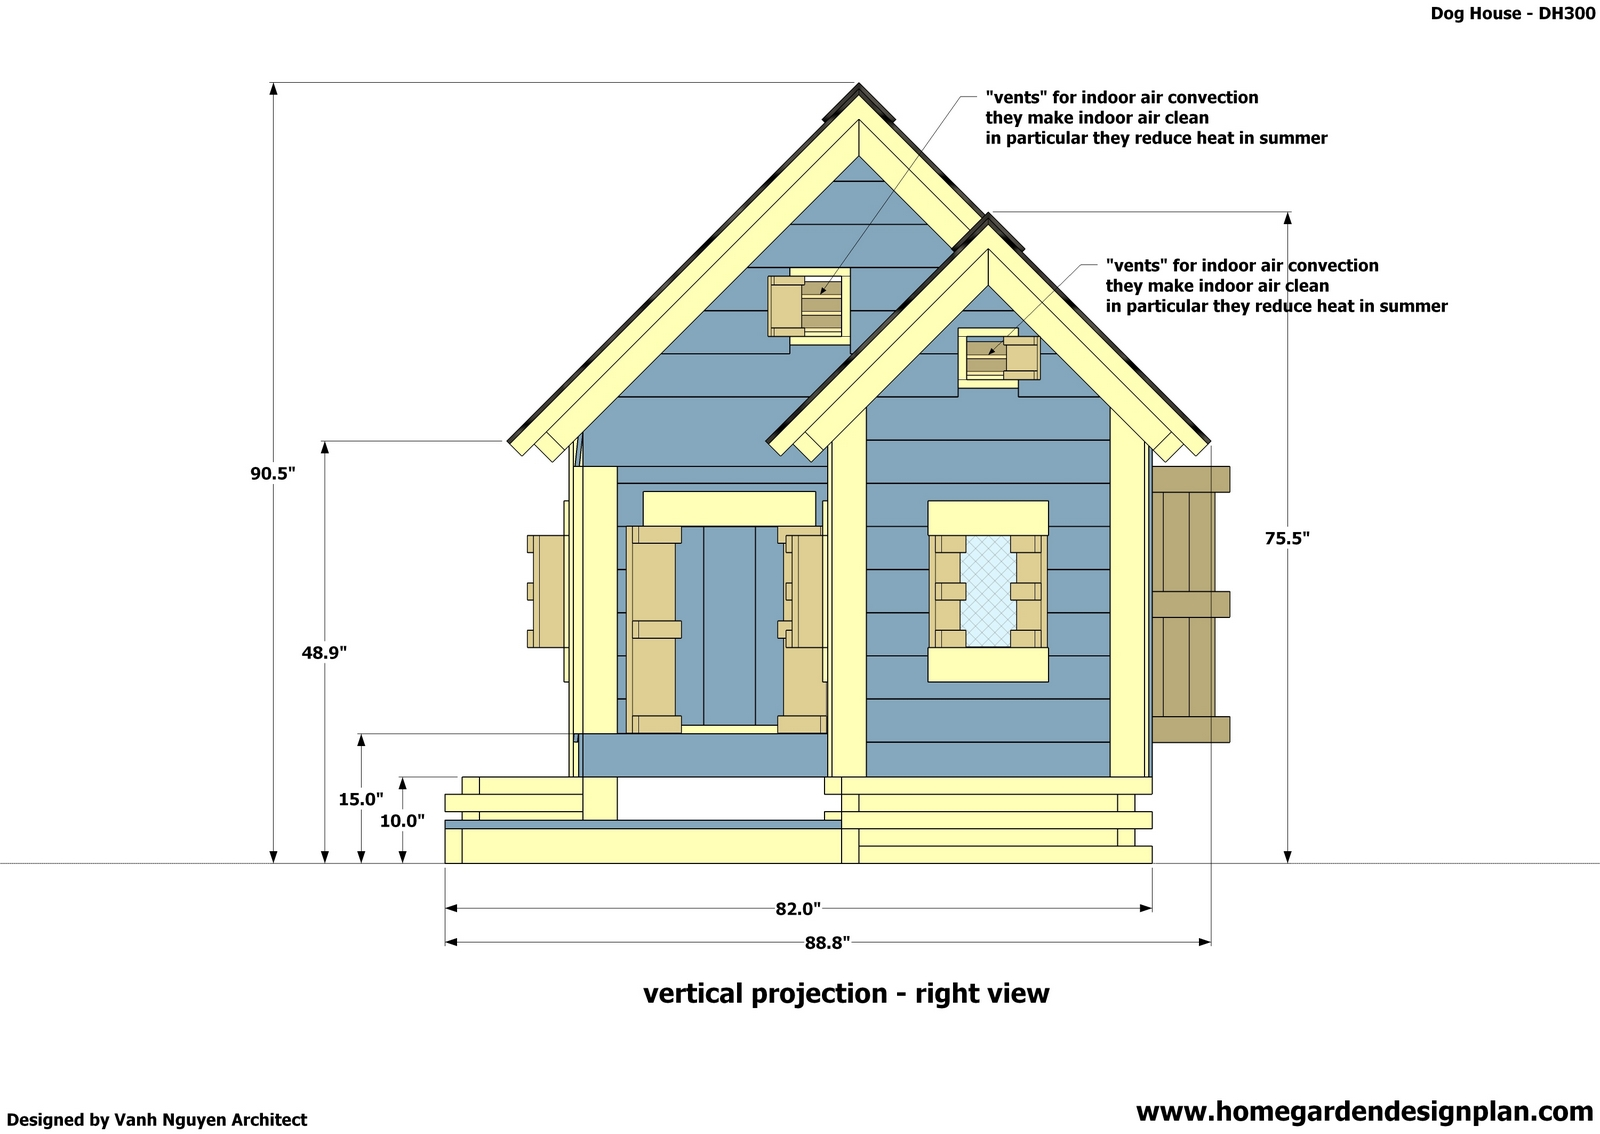 Home garden plans dh300 dog house plans free how to for Home construction plans